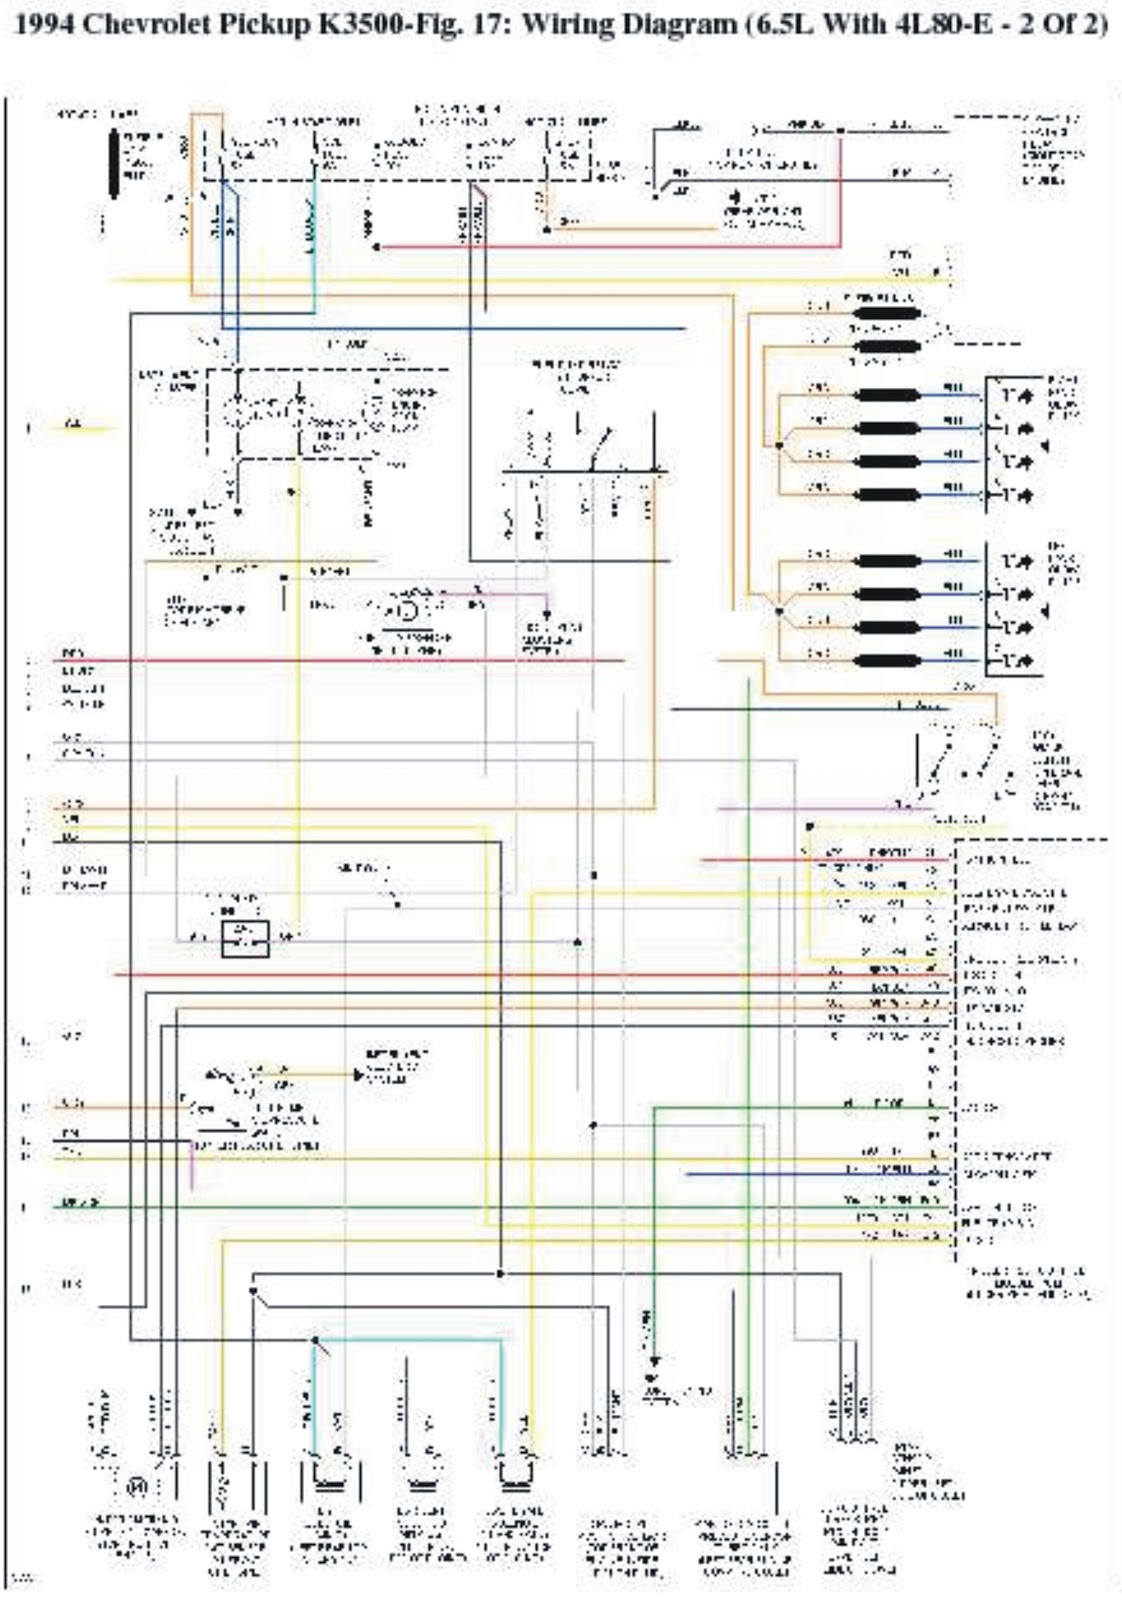 1993 Chevy Pickup Wiring Diagram 4x4 Vehicles 3500 Diagrams Get Free Image About